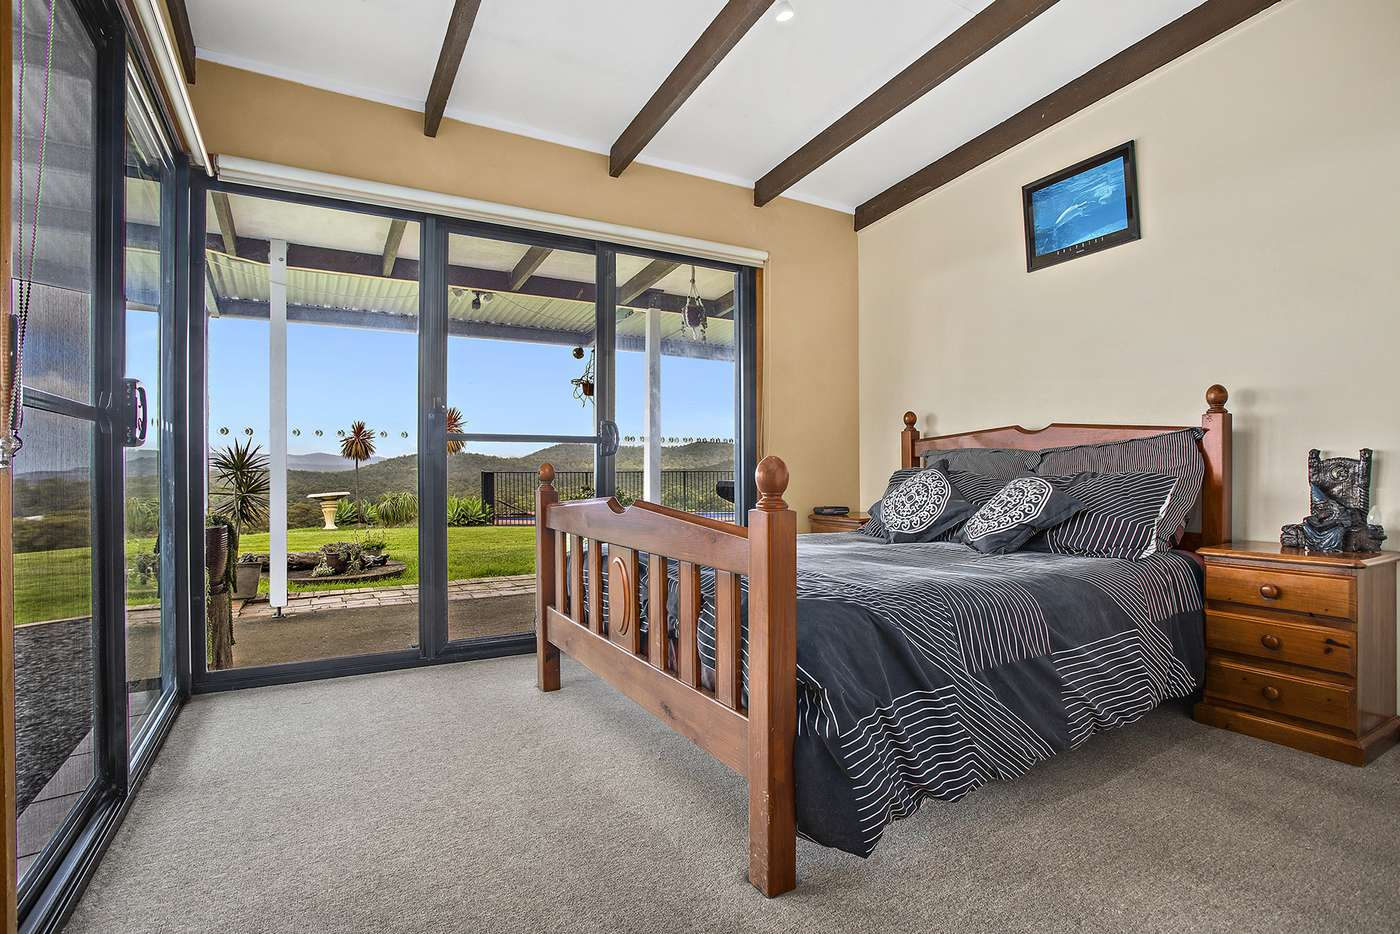 Seventh view of Homely house listing, 35D Rickards Rd, Sandy Beach NSW 2456